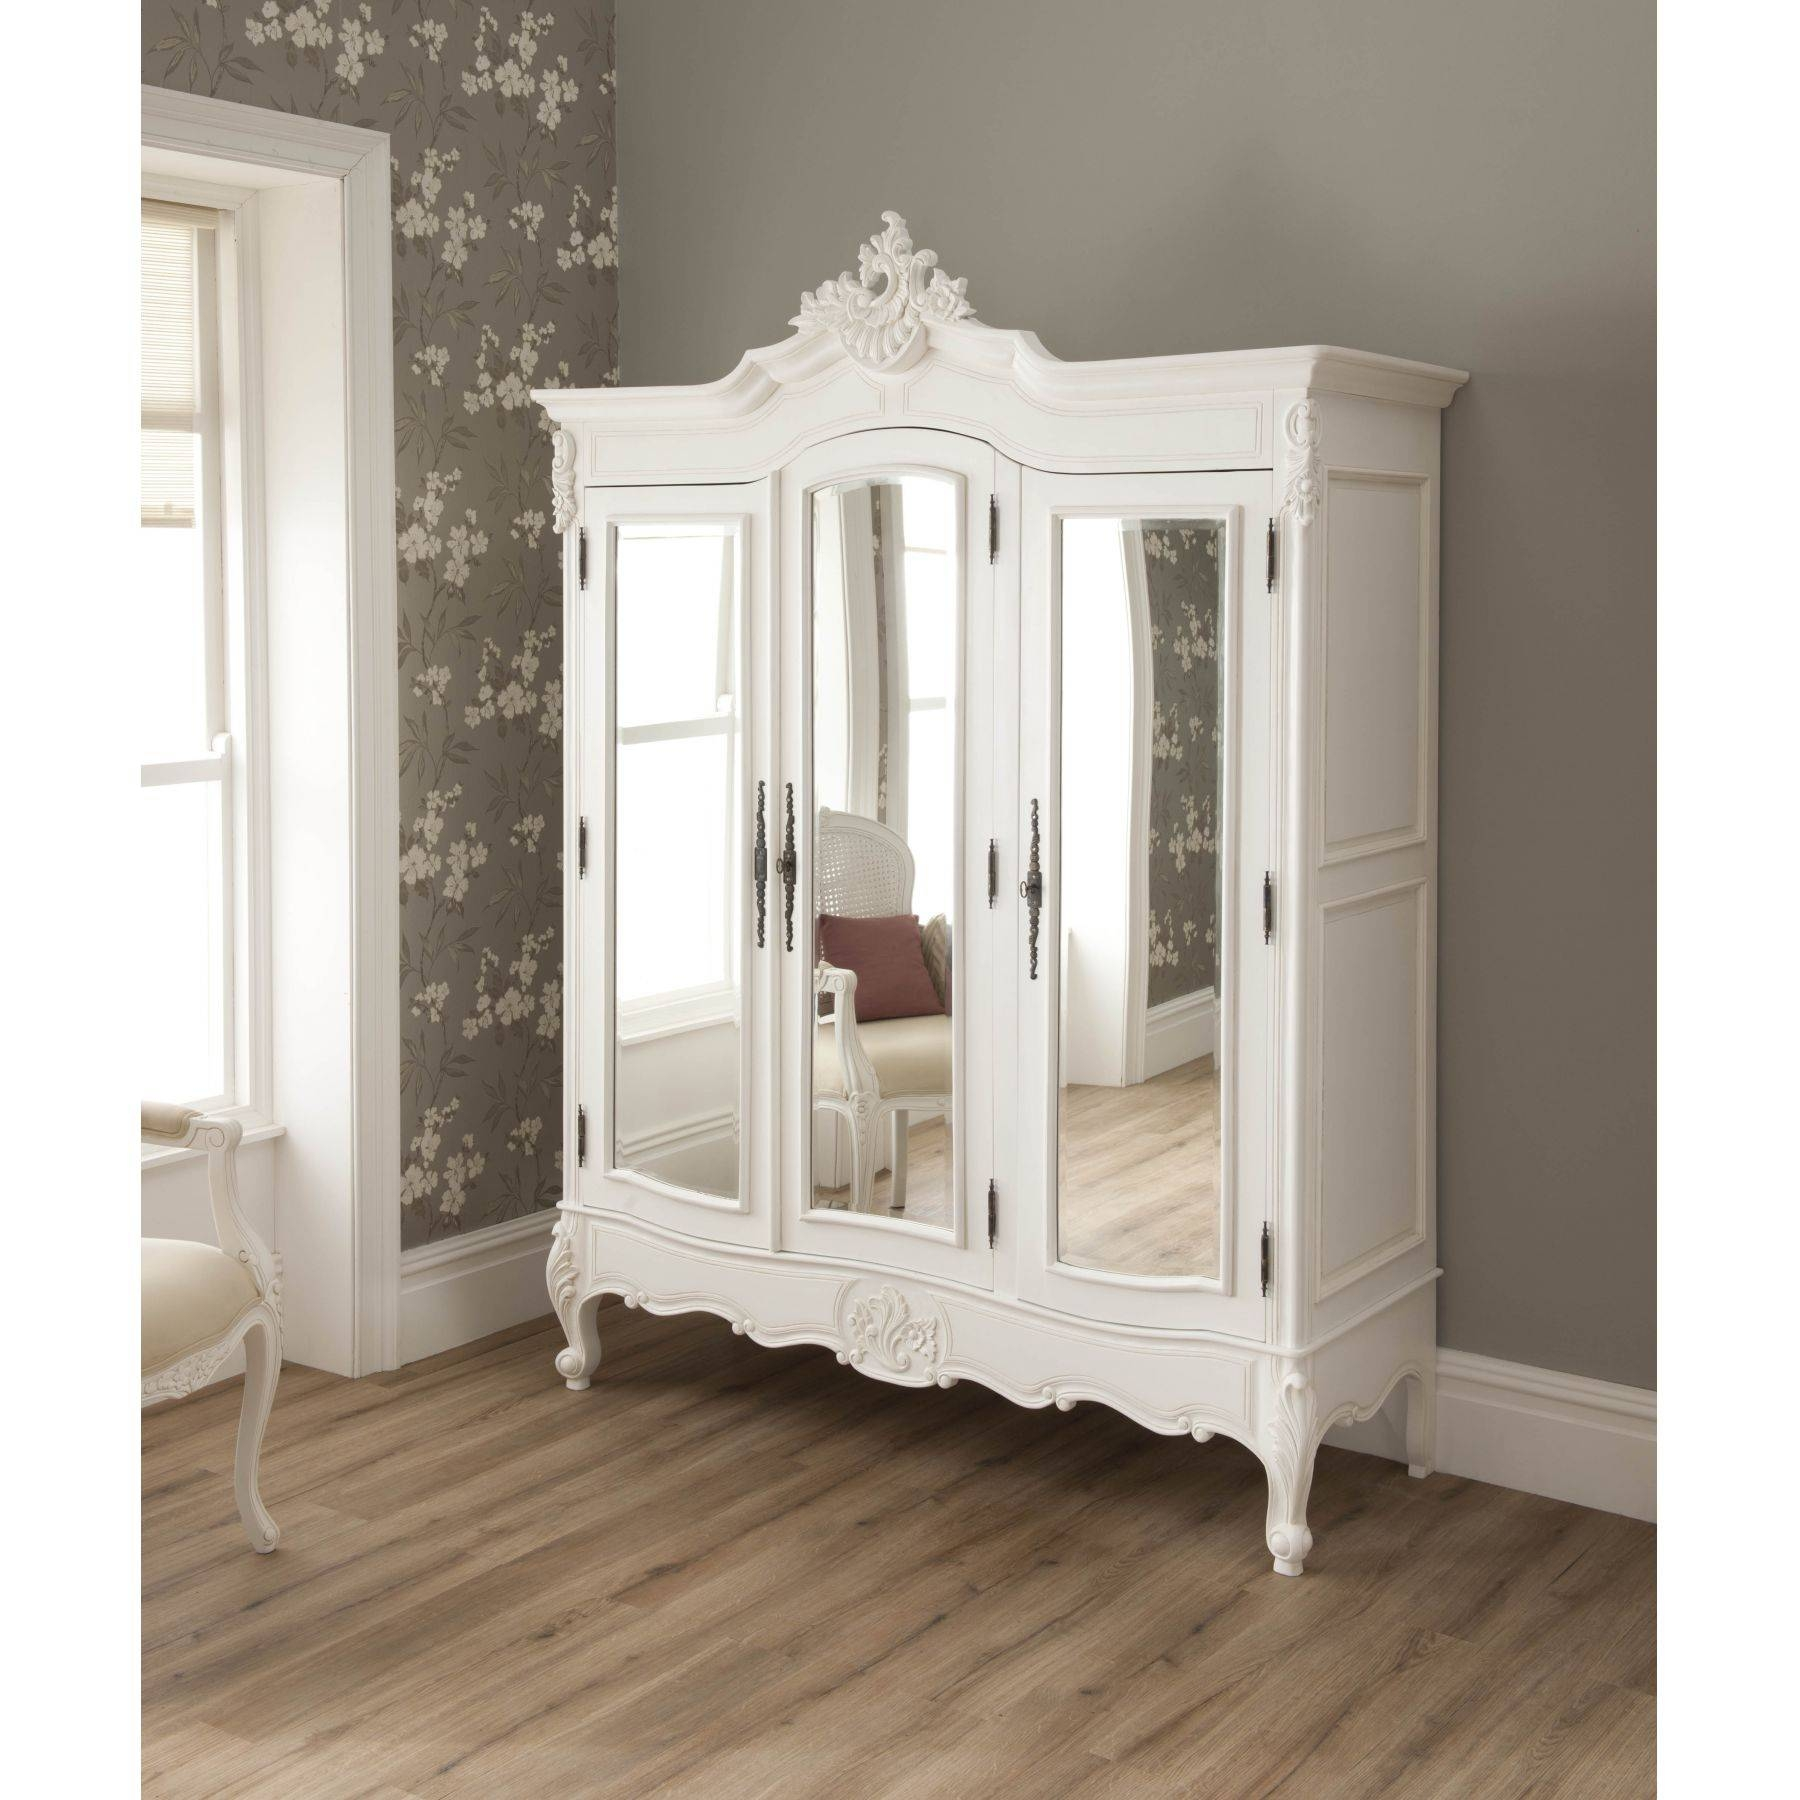 La Rochelle Shabby Chic Antique Style Wardrobe | Shabby Chic Furniture for Cheap Shabby Chic Wardrobes (Image 10 of 15)